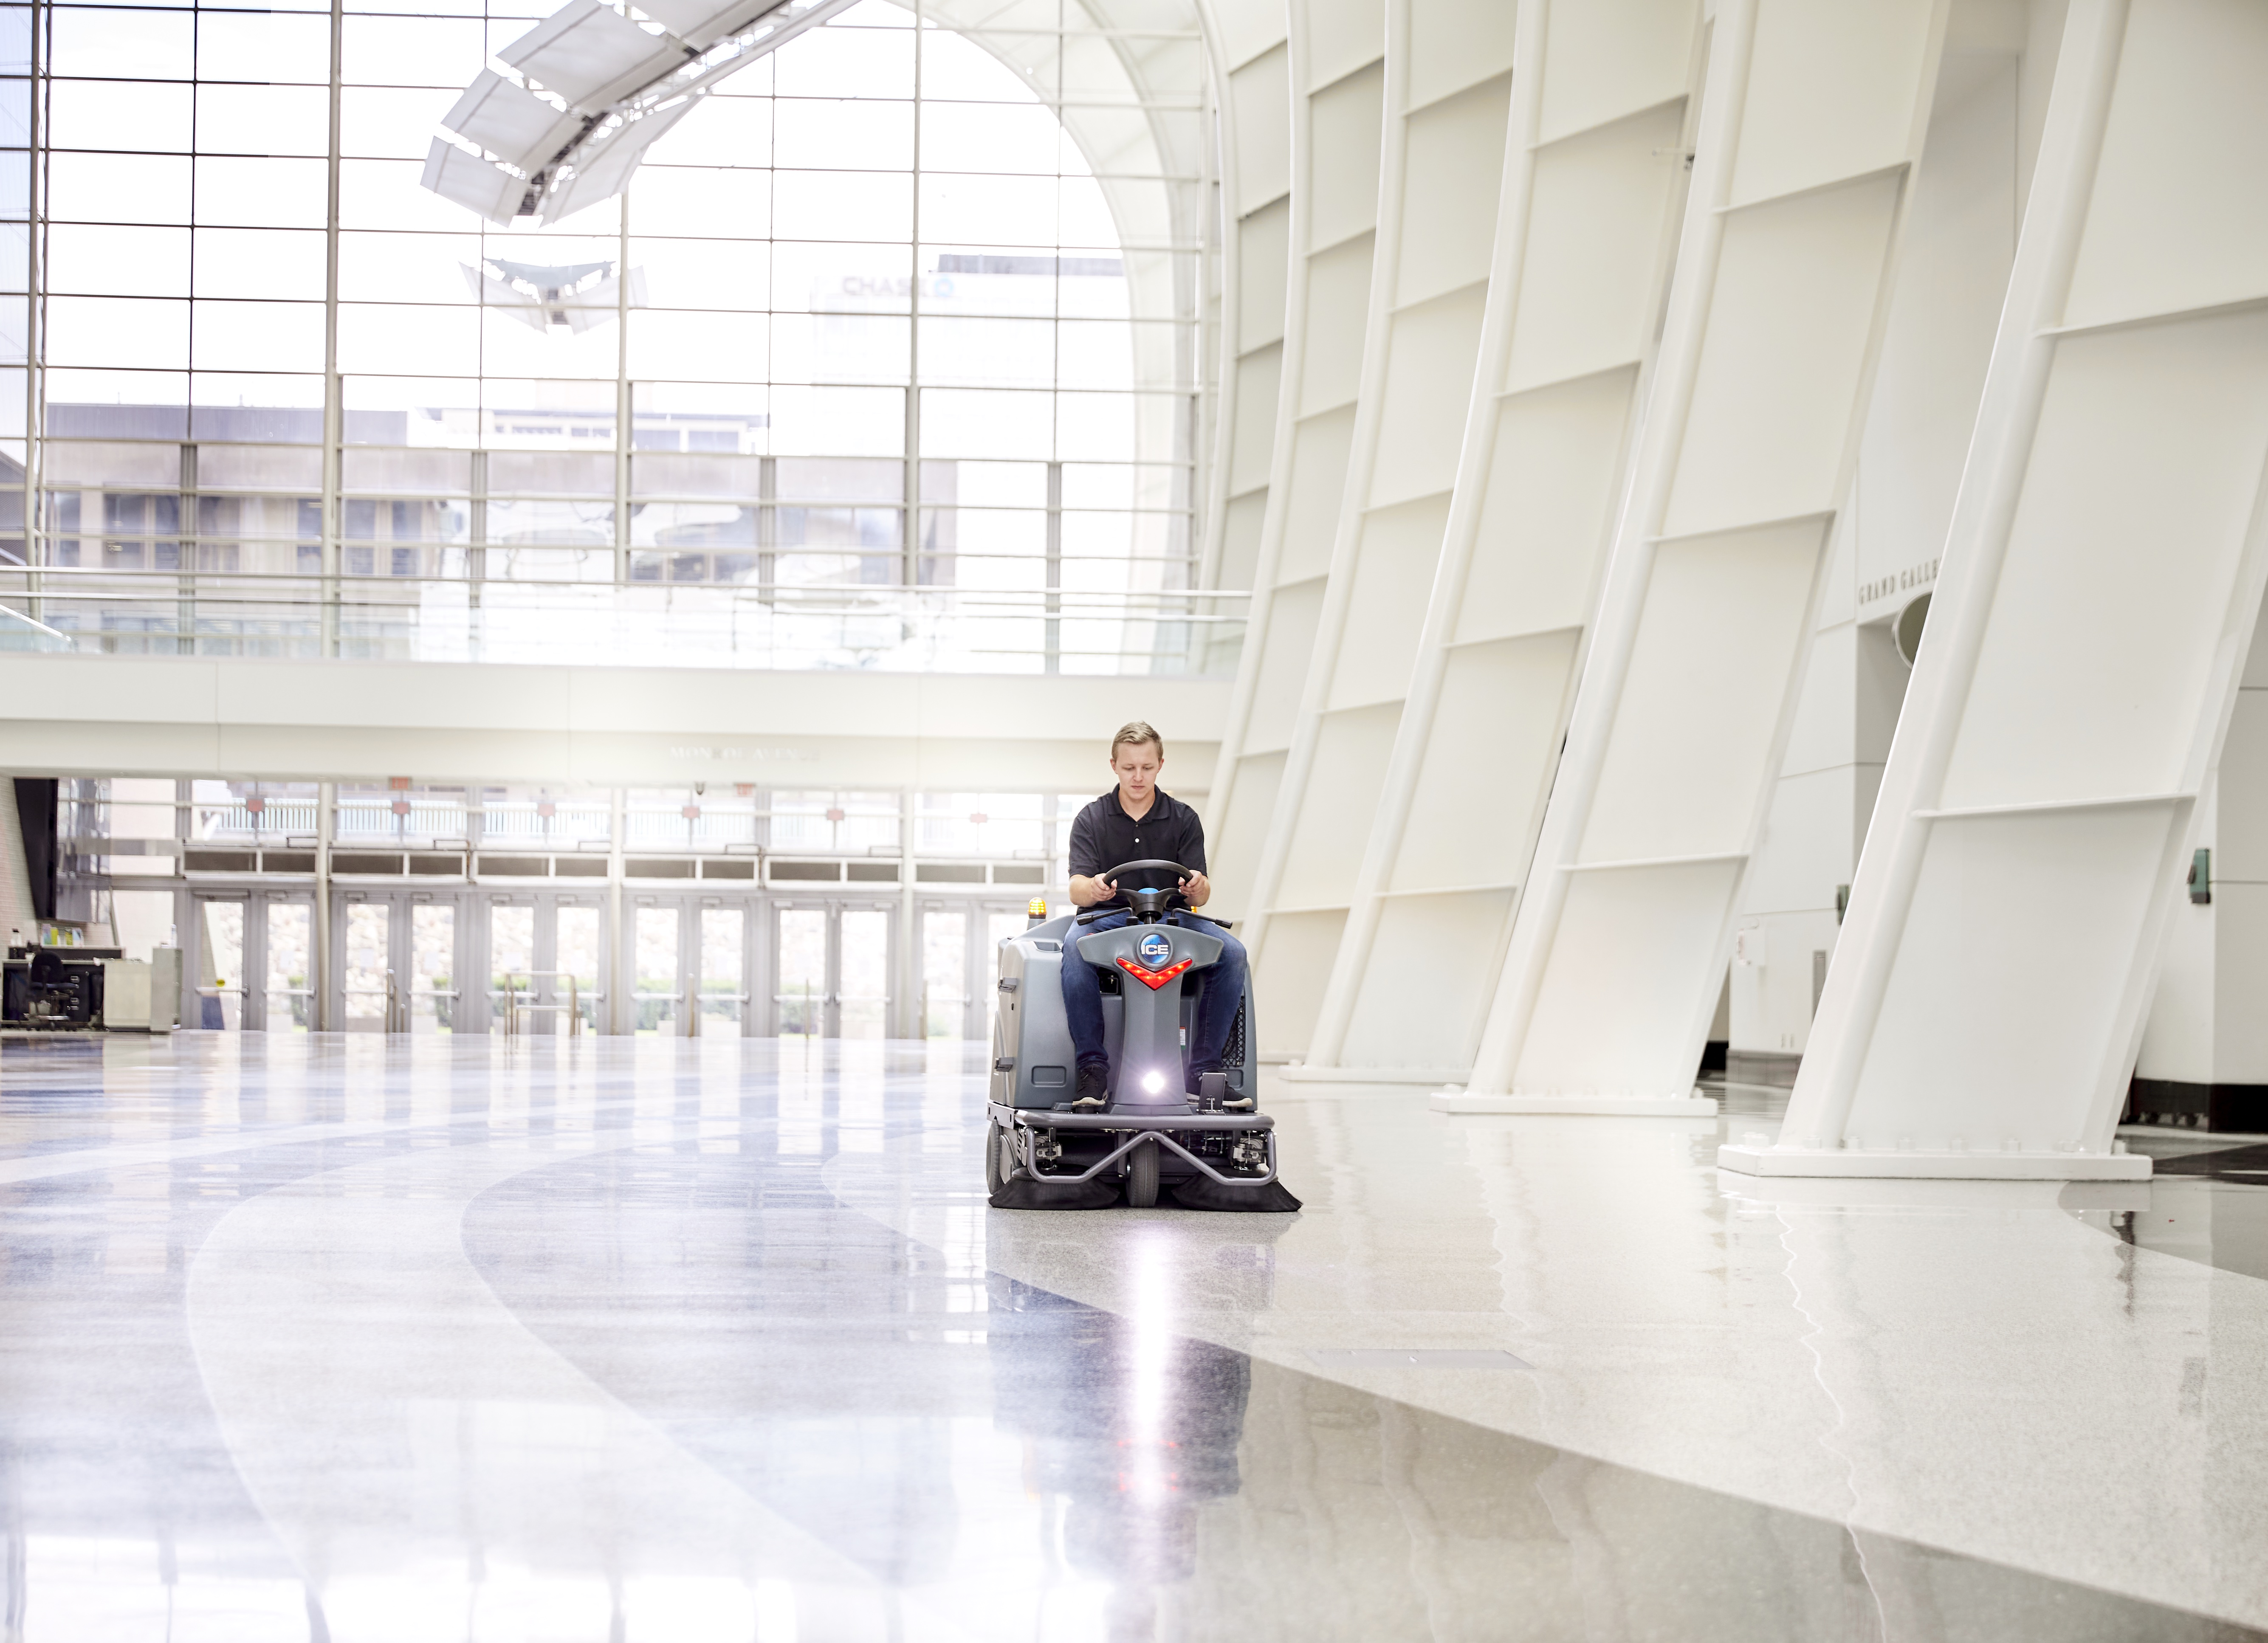 Machine operator riding the is1100L sweeper in a convention center